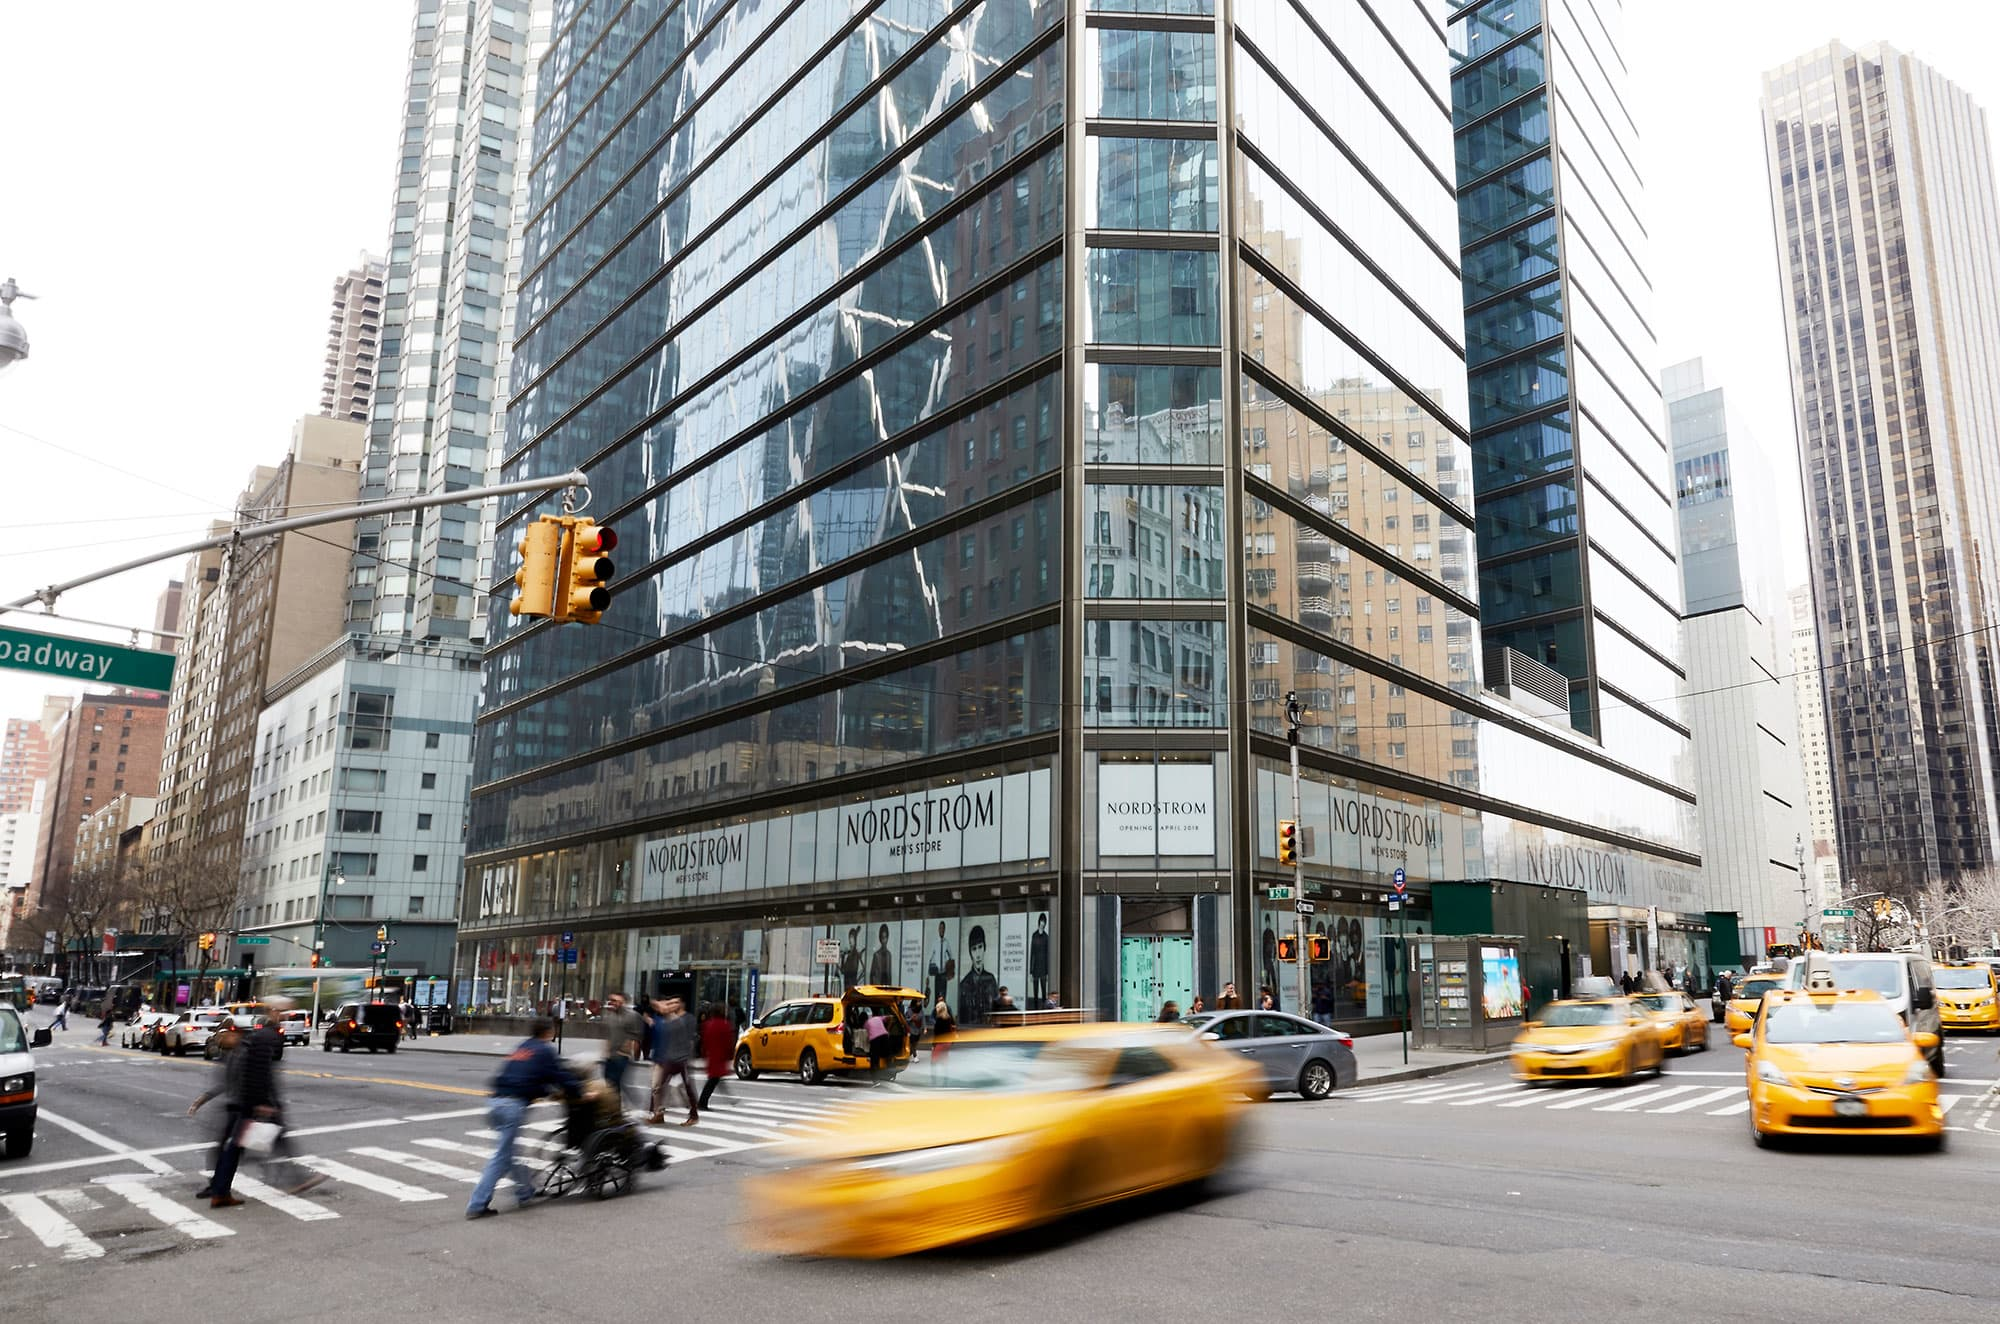 Nordstrom's massive department store for women set to open this October in New York